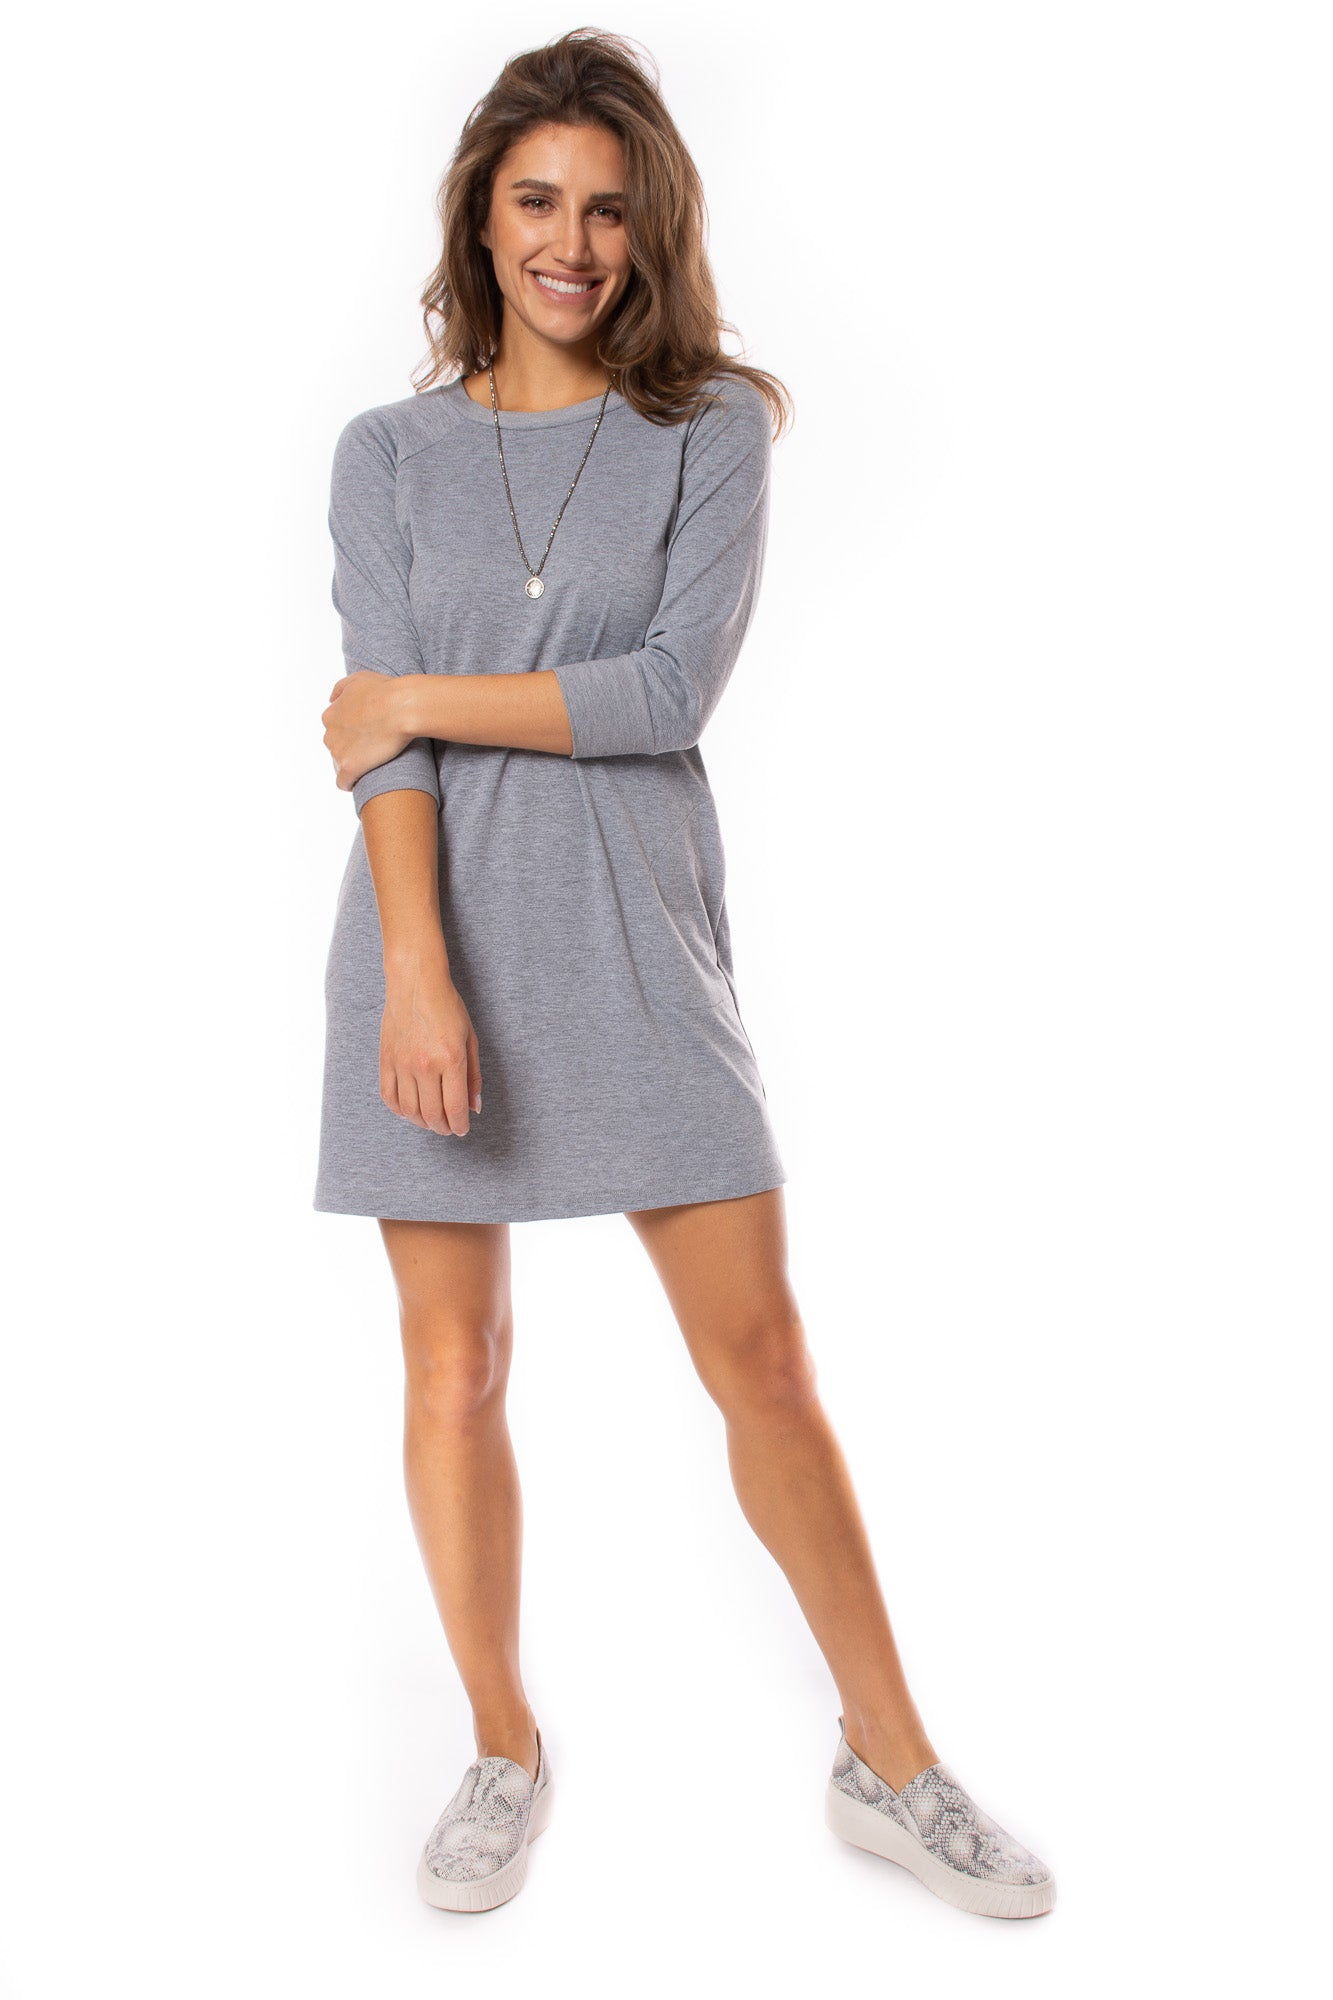 Veronica M. - Sweatshirt Dress (DSS-2597, Heather Gray)